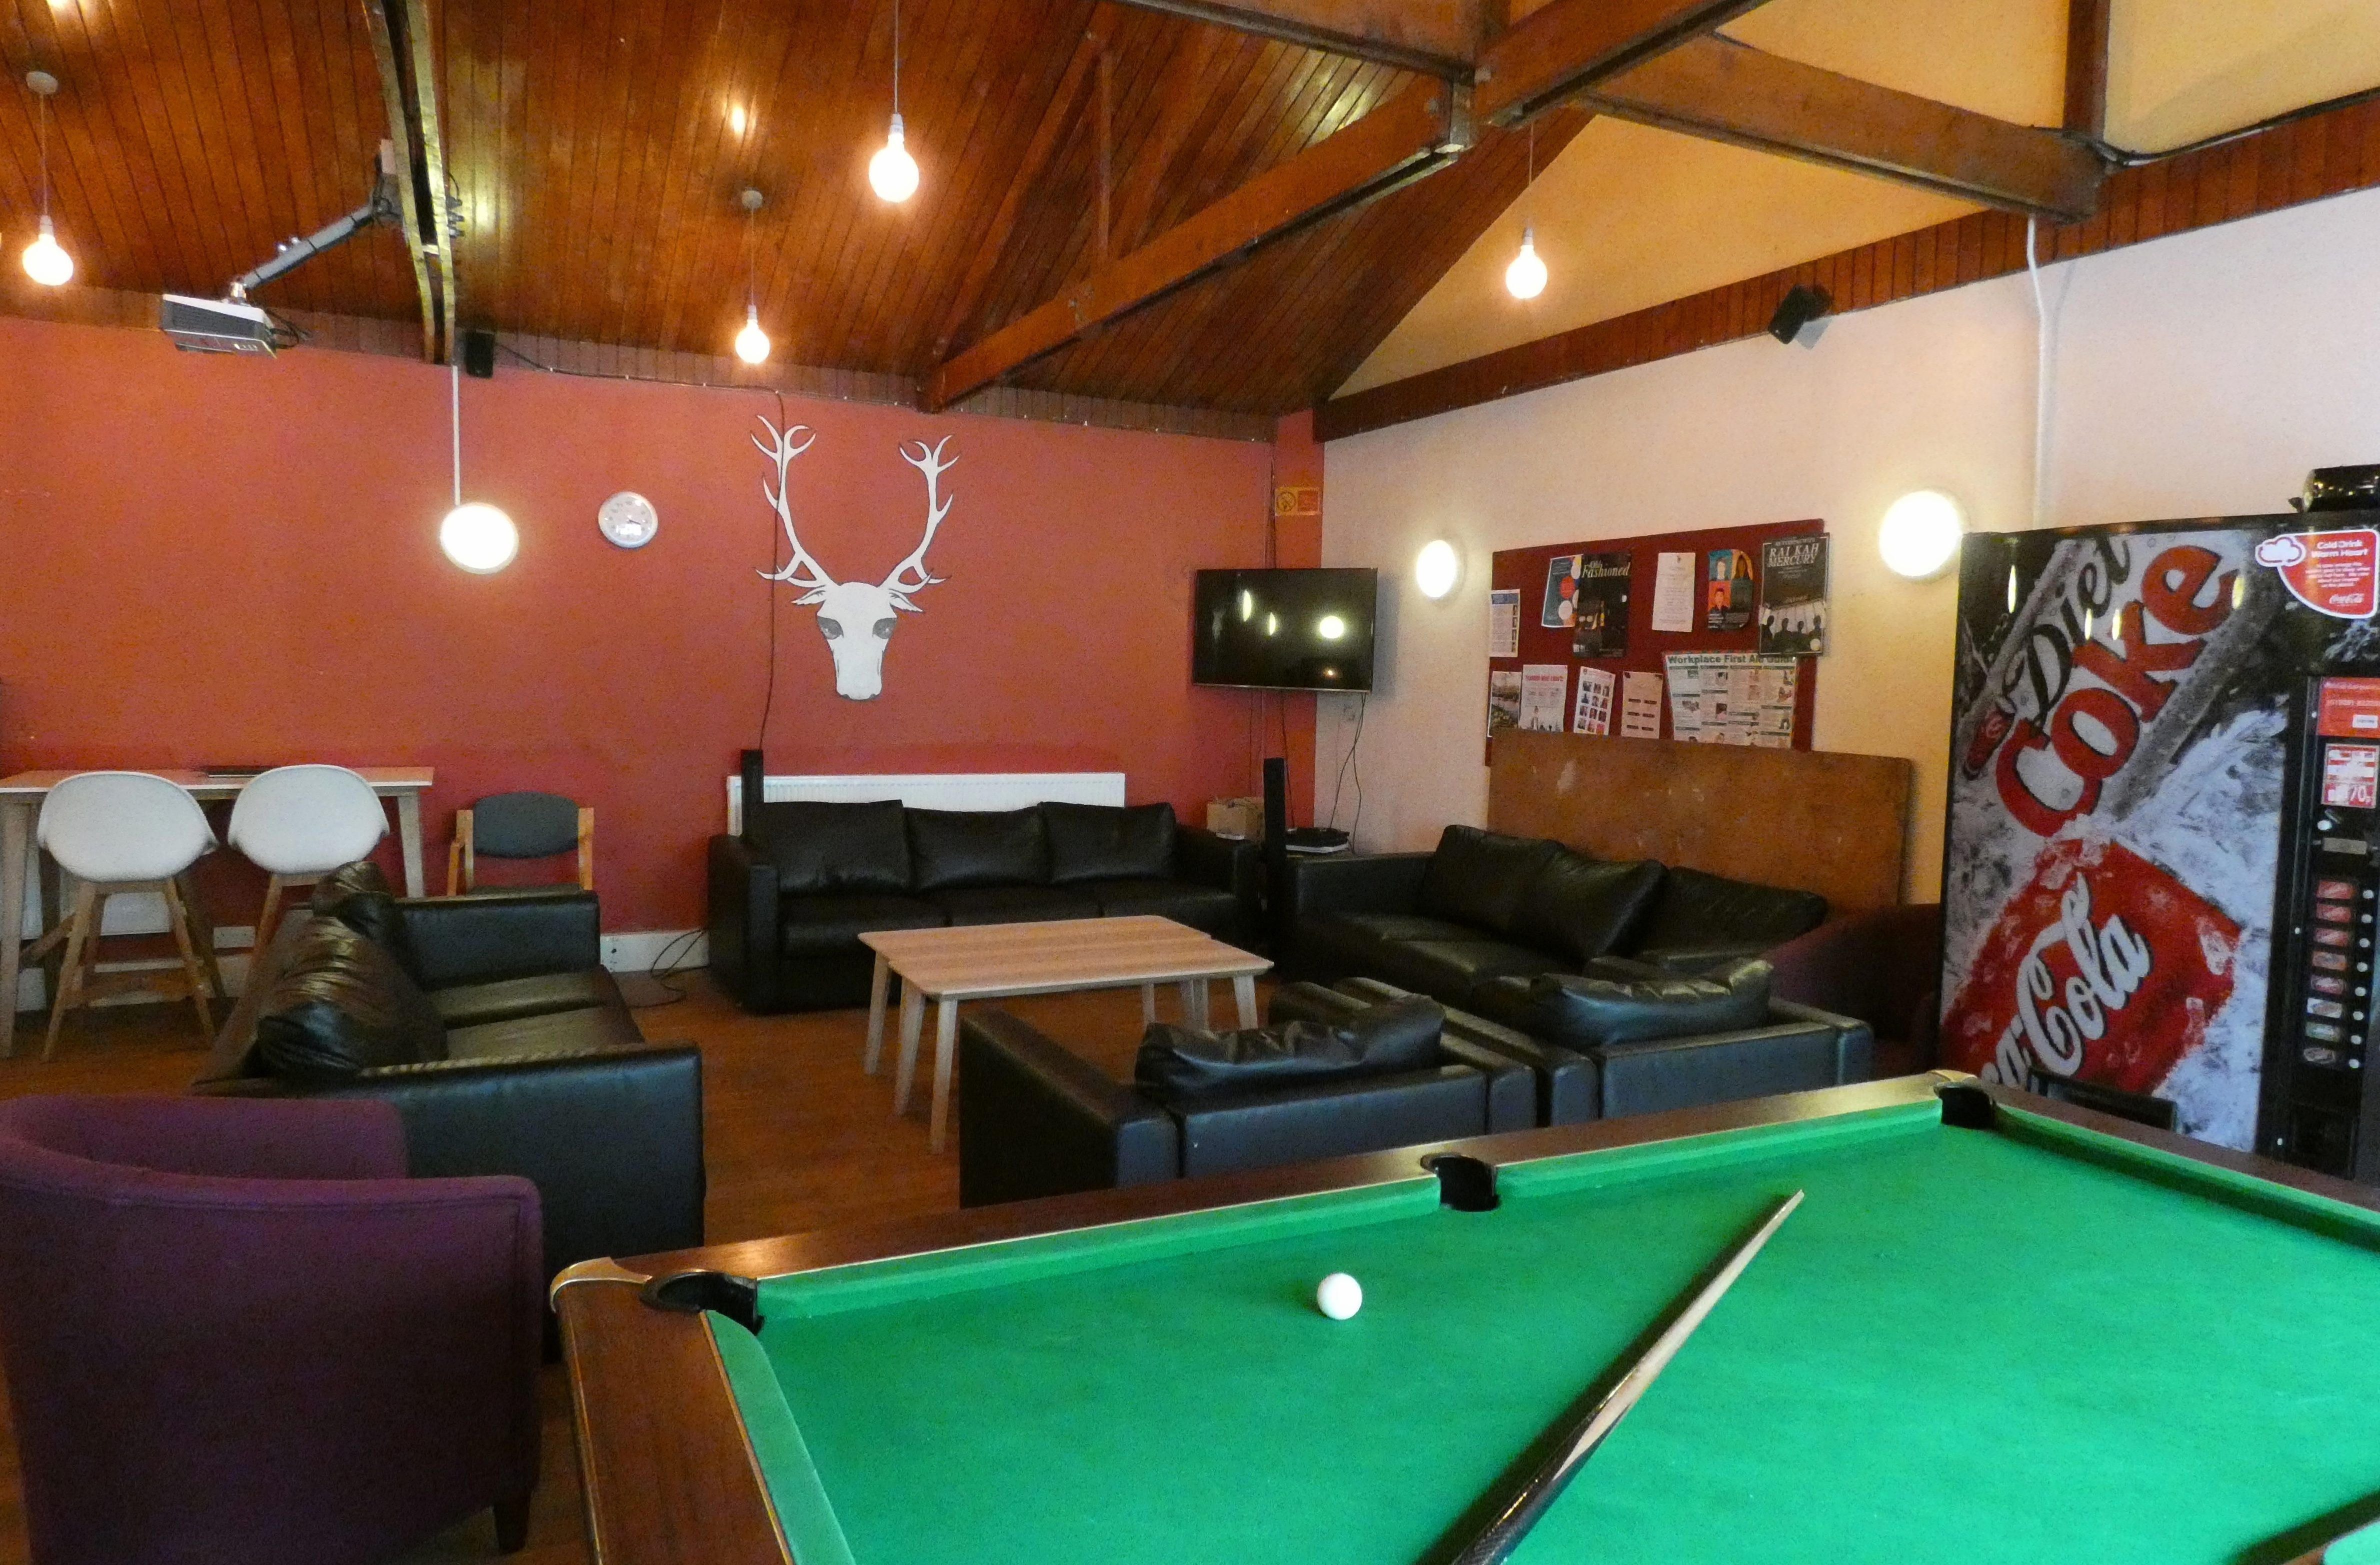 A brightly lit room with sofas, pool table and vending machine